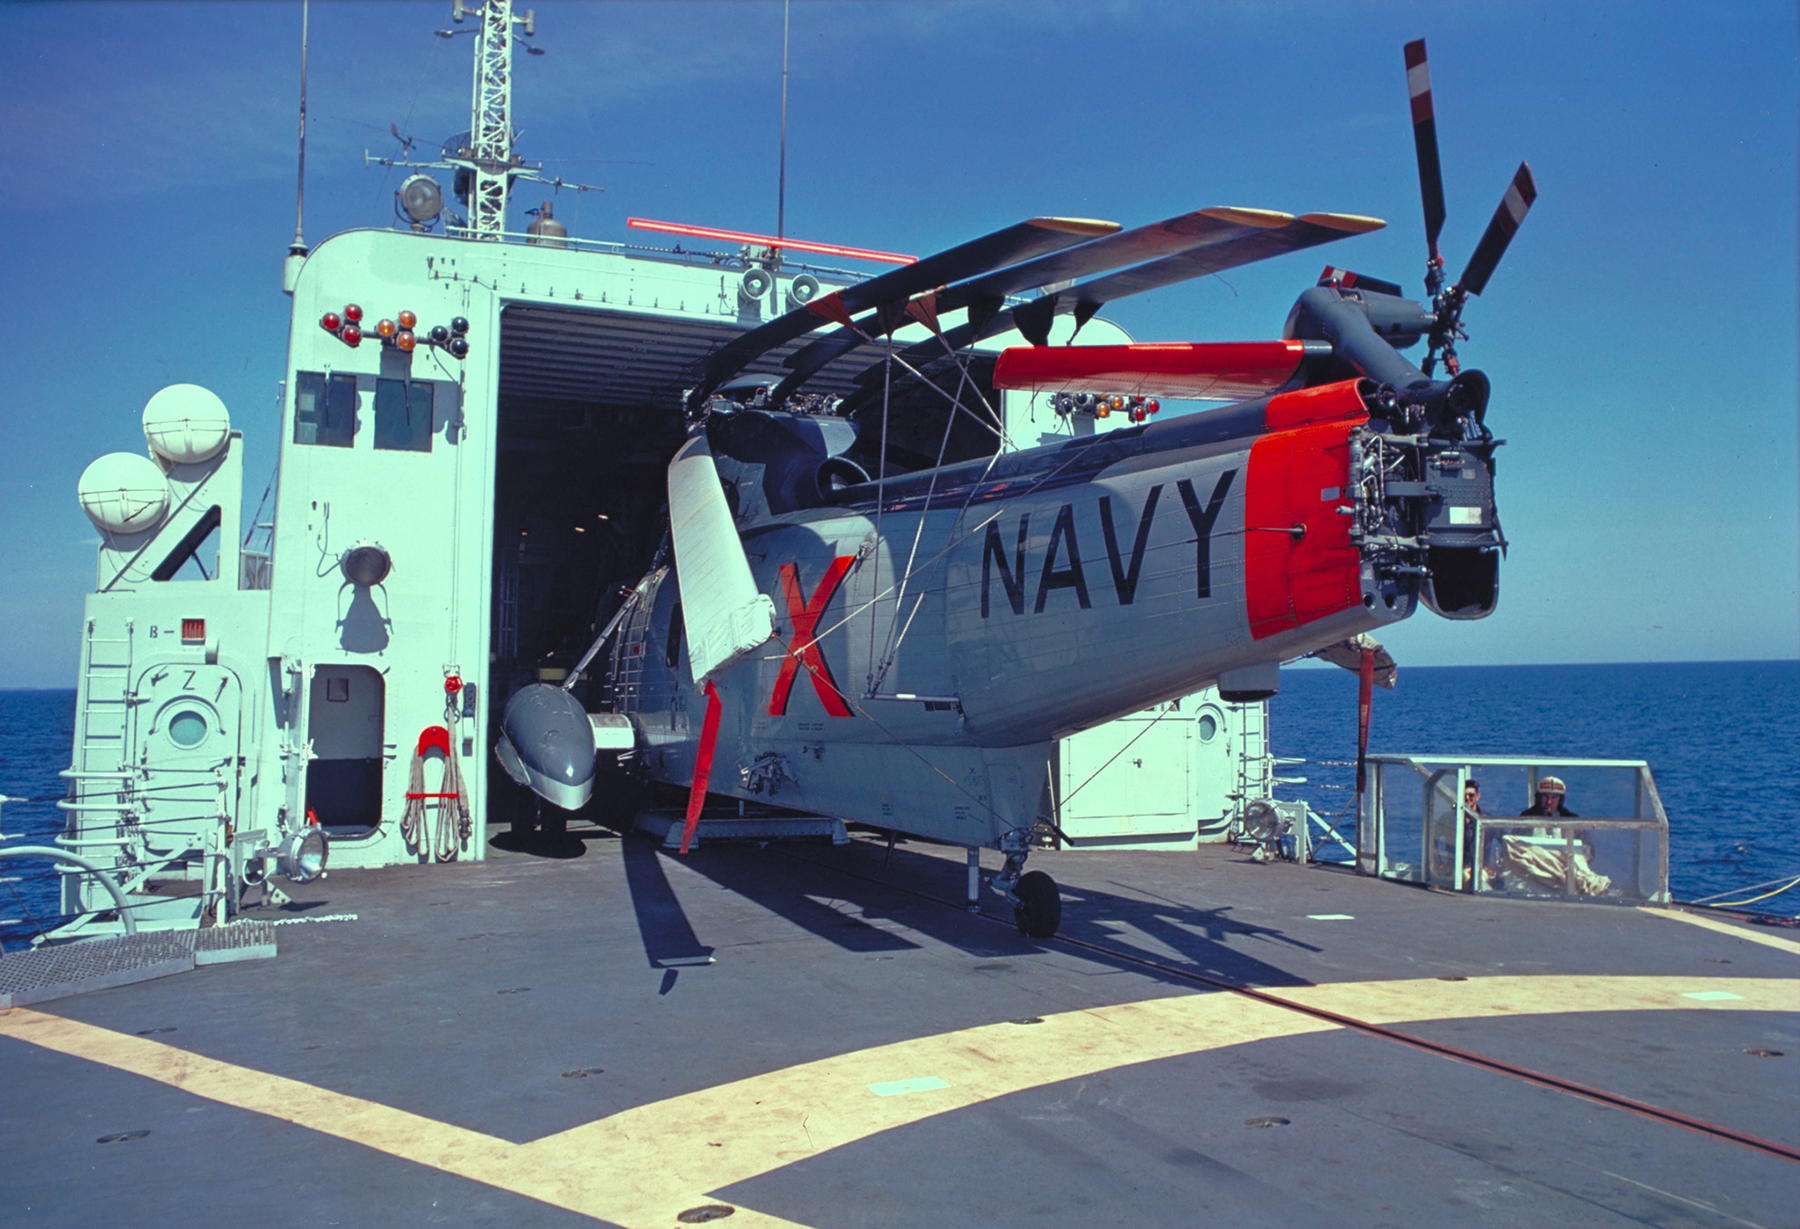 In 1969, a CH-124 Sea King helicopter with its rotor blades folded is moved out of its hangar on the flight deck of a Canadian warship at sea. PHOTO: DND, REC69-102